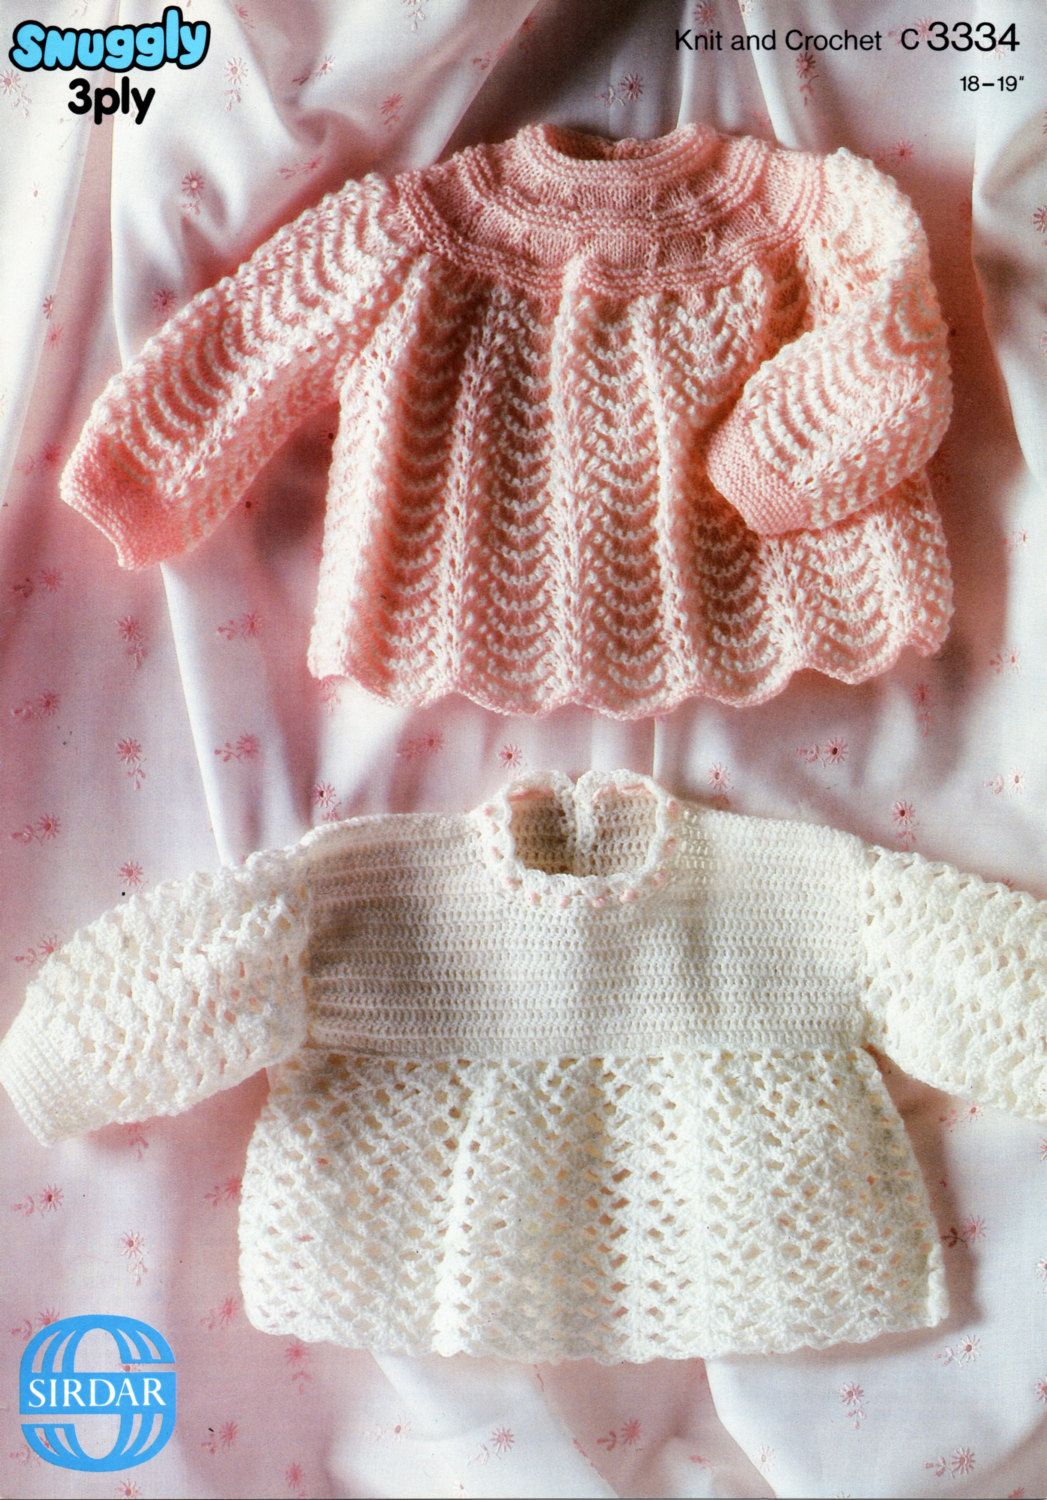 Baby angel top crochet pattern angel top knitting pattern baby girls ...